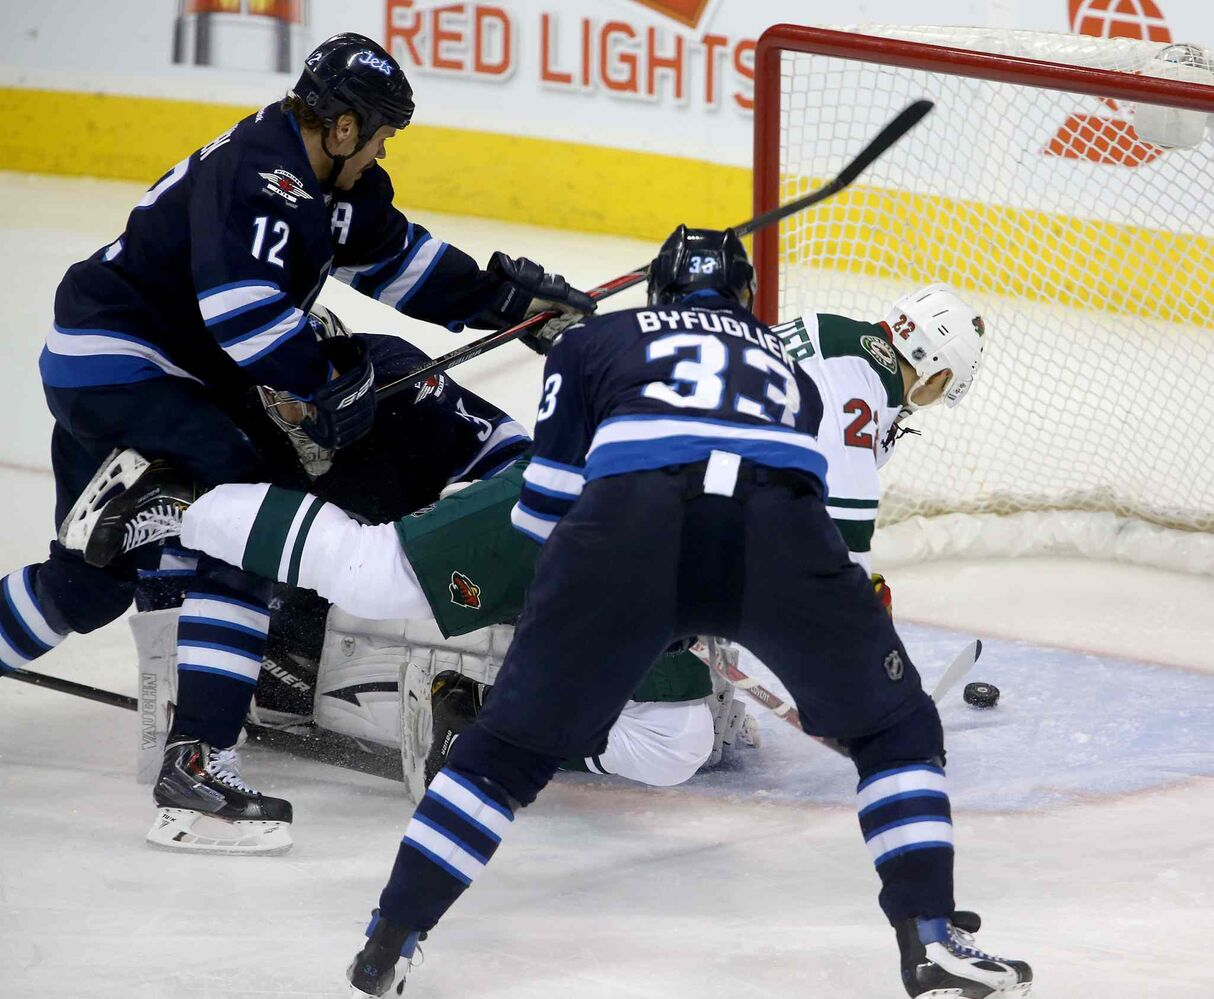 Minnesota Wild's Nino Niederreiter (right) gets through Winnipeg Jets skaters Olli Jokinen (left) and Dustin Byfuglien (centre) to beat goaltender Ondrej Pavelec during the third period. (TREVOR HAGAN / WINNIPEG FREE PRESS)